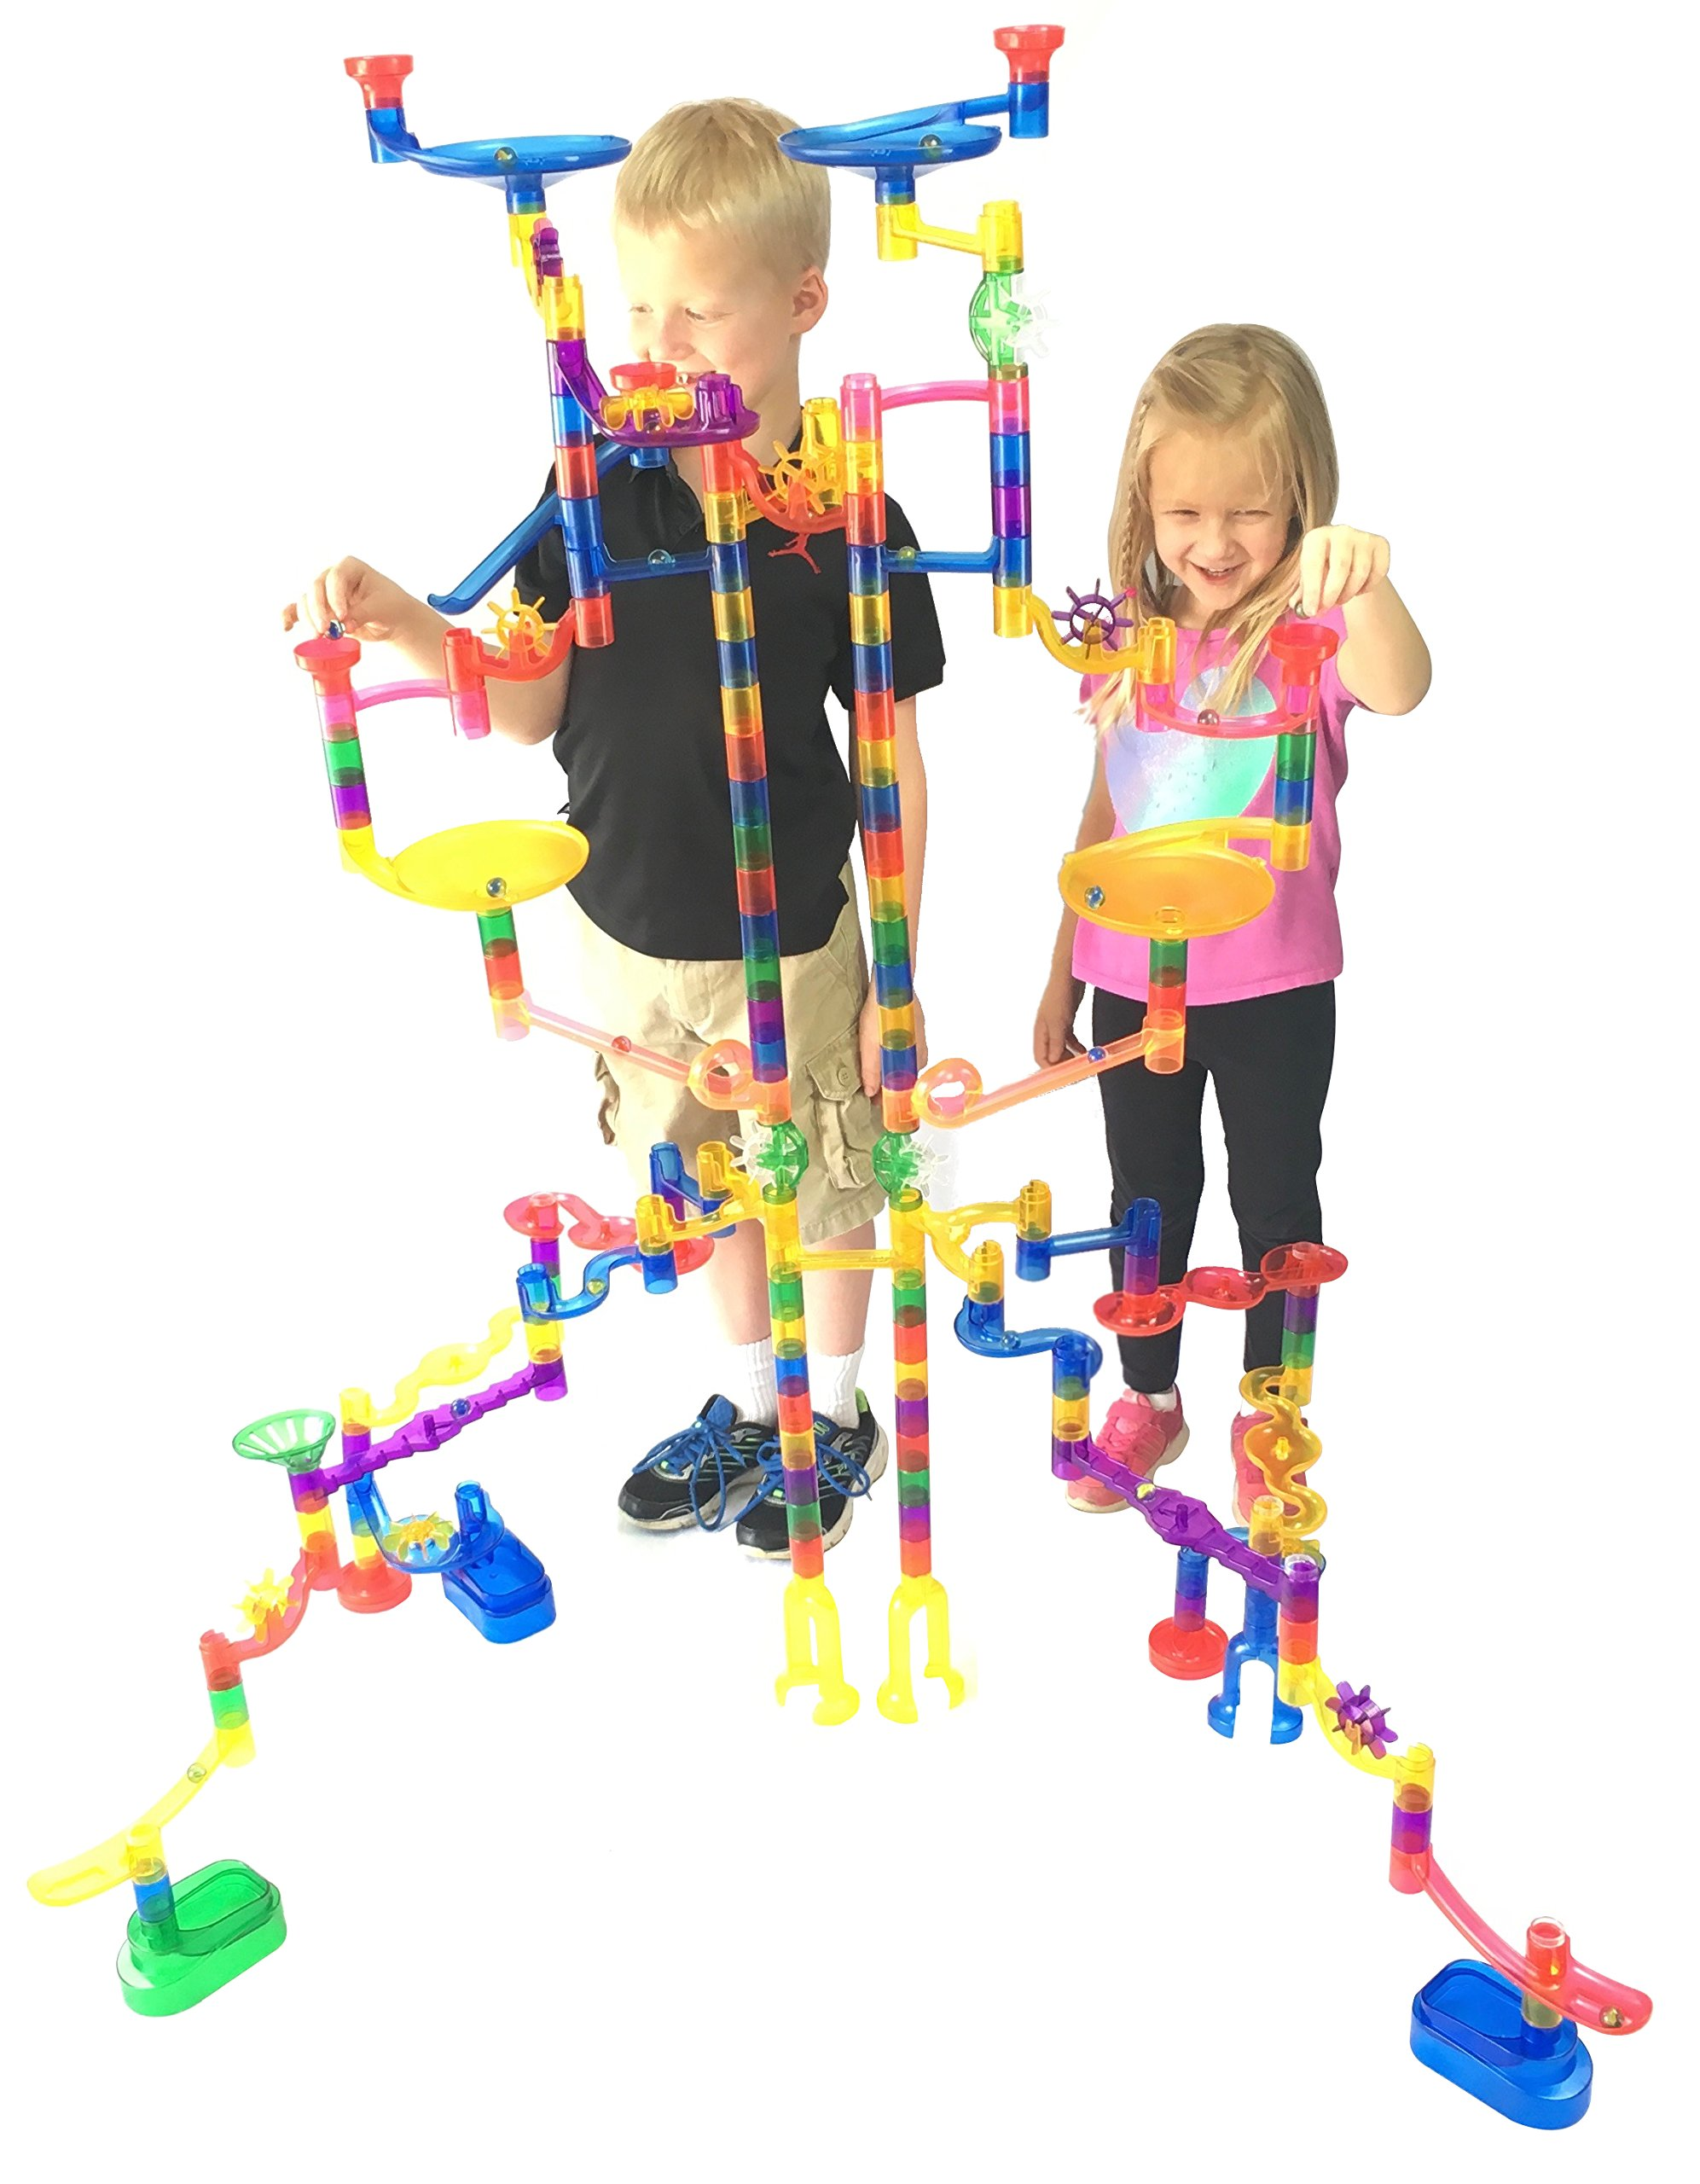 Genius 125 Seethrough Marble Run Extreme Set 145 Complete Piece 20 Glass Marbles